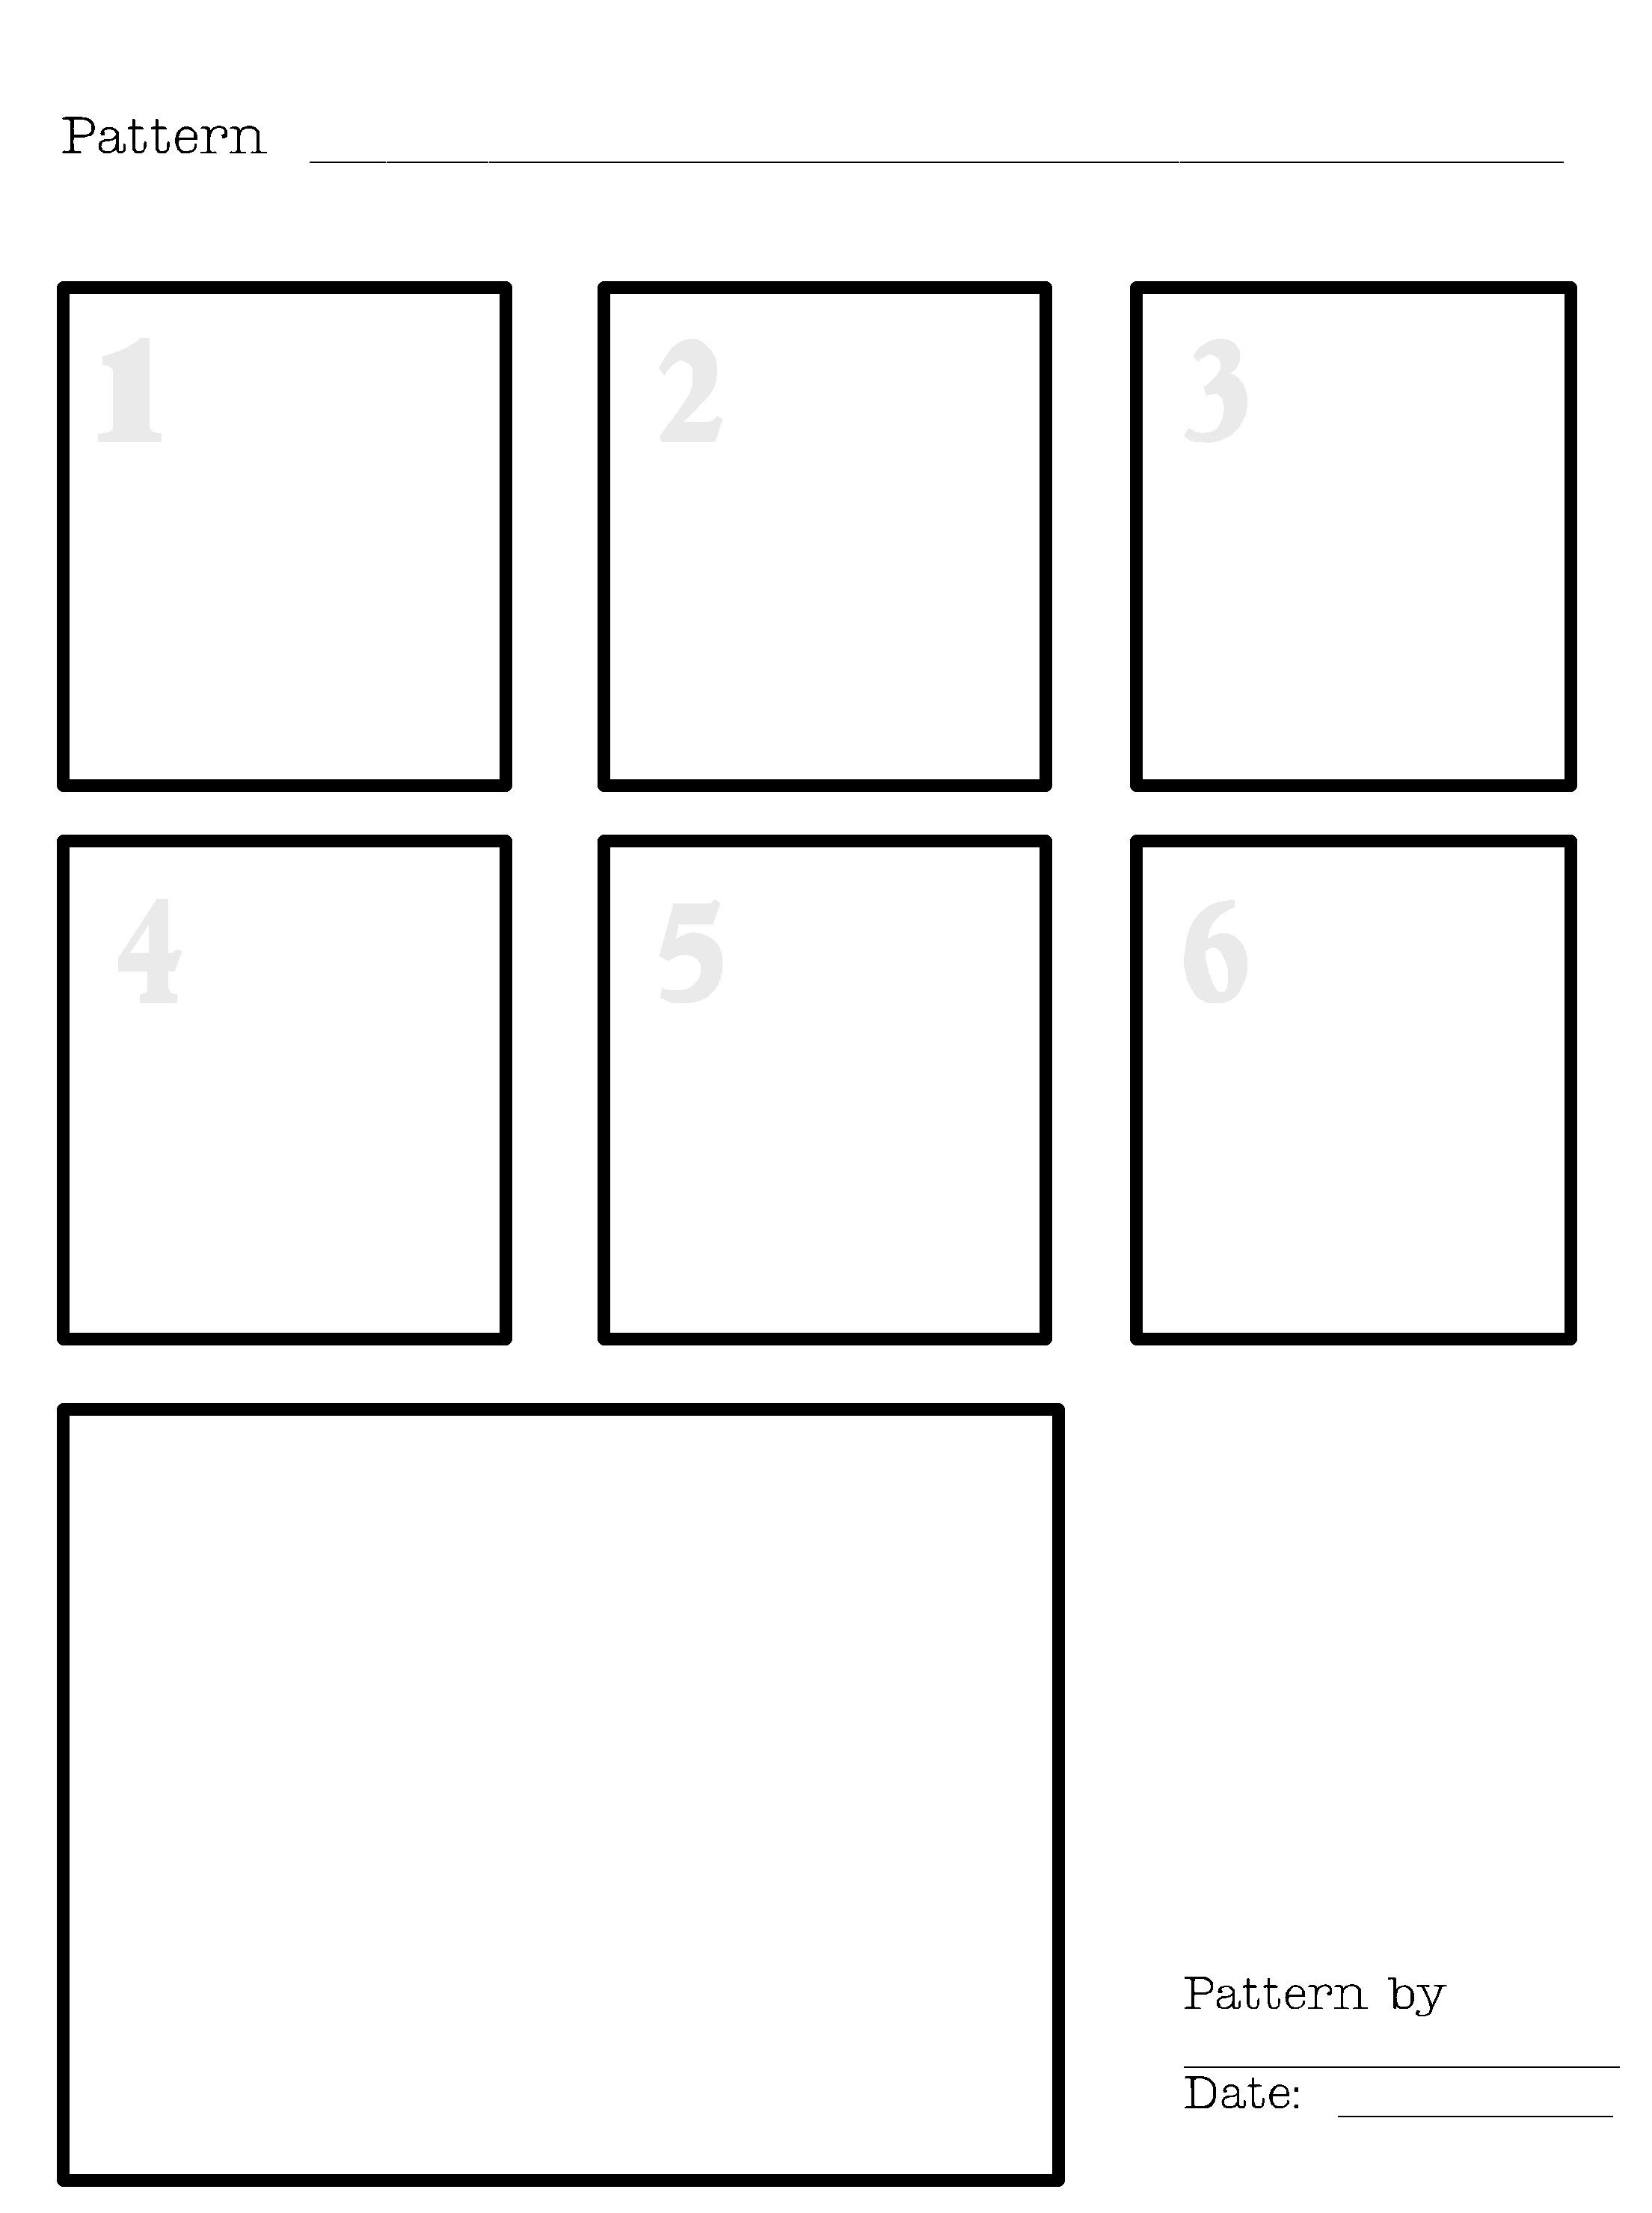 Blank Worksheet For Creating Your Own Zentangles